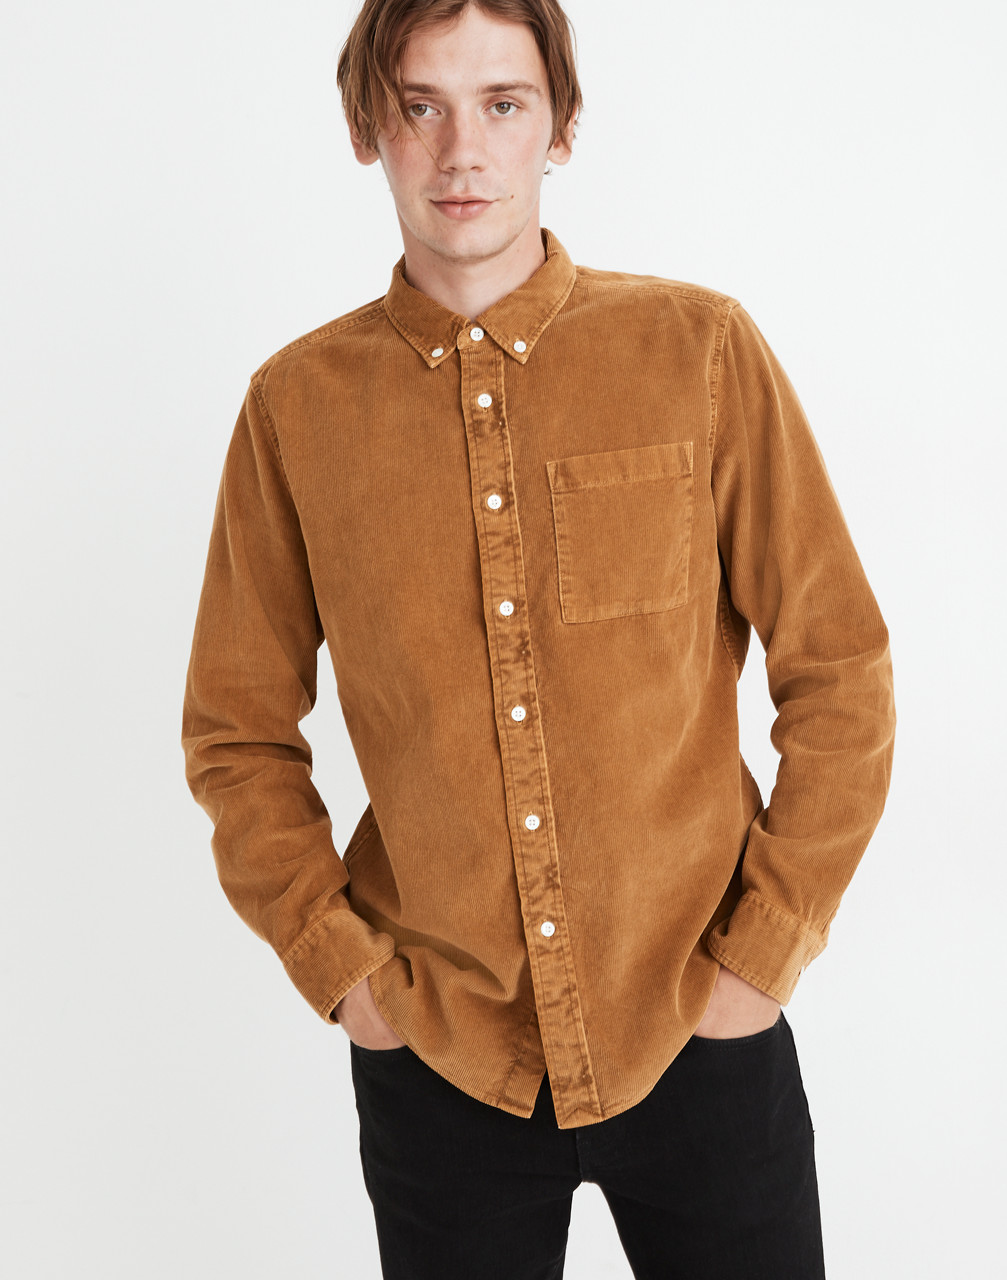 Mens Vintage Shirts – Casual, Dress, T-shirts, Polos Corduroy Perfect Shirt $88.00 AT vintagedancer.com